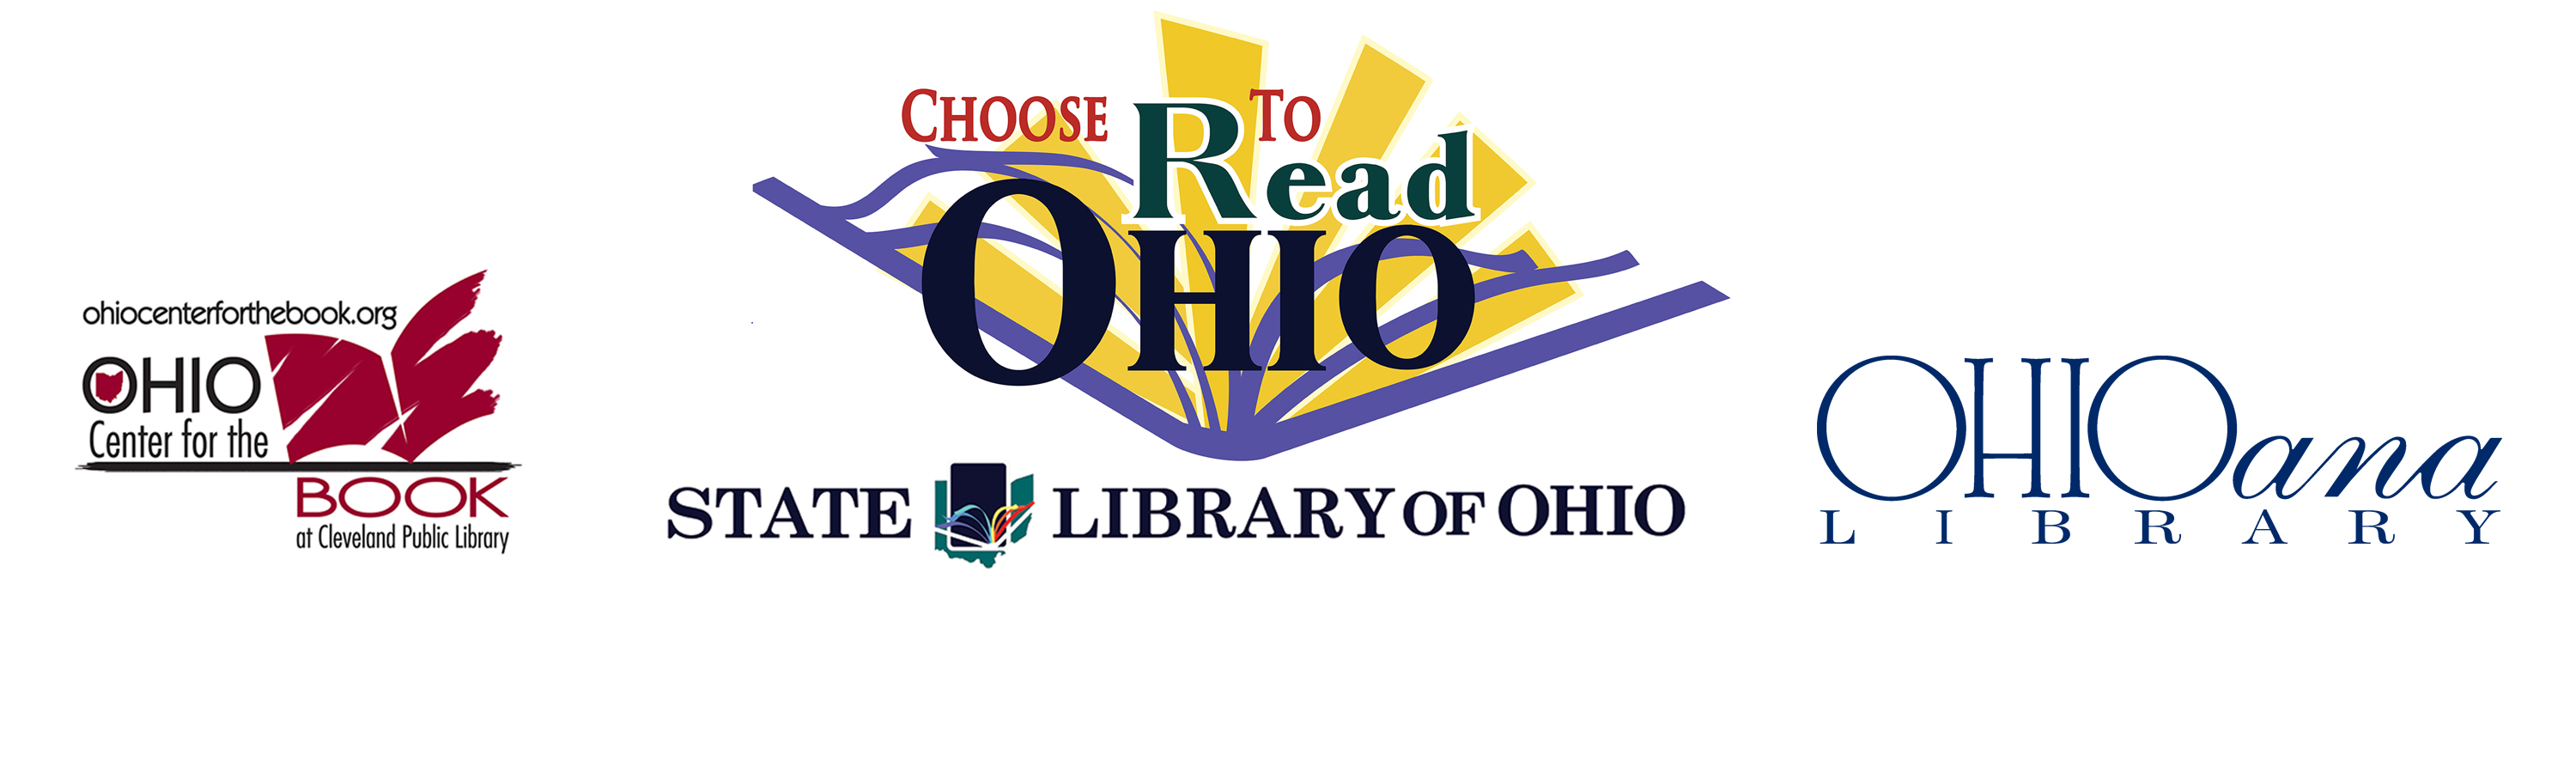 Choose to Read Ohio logo with partners' logos Ohio Center for the Book, State Library of Ohio, and Ohioana